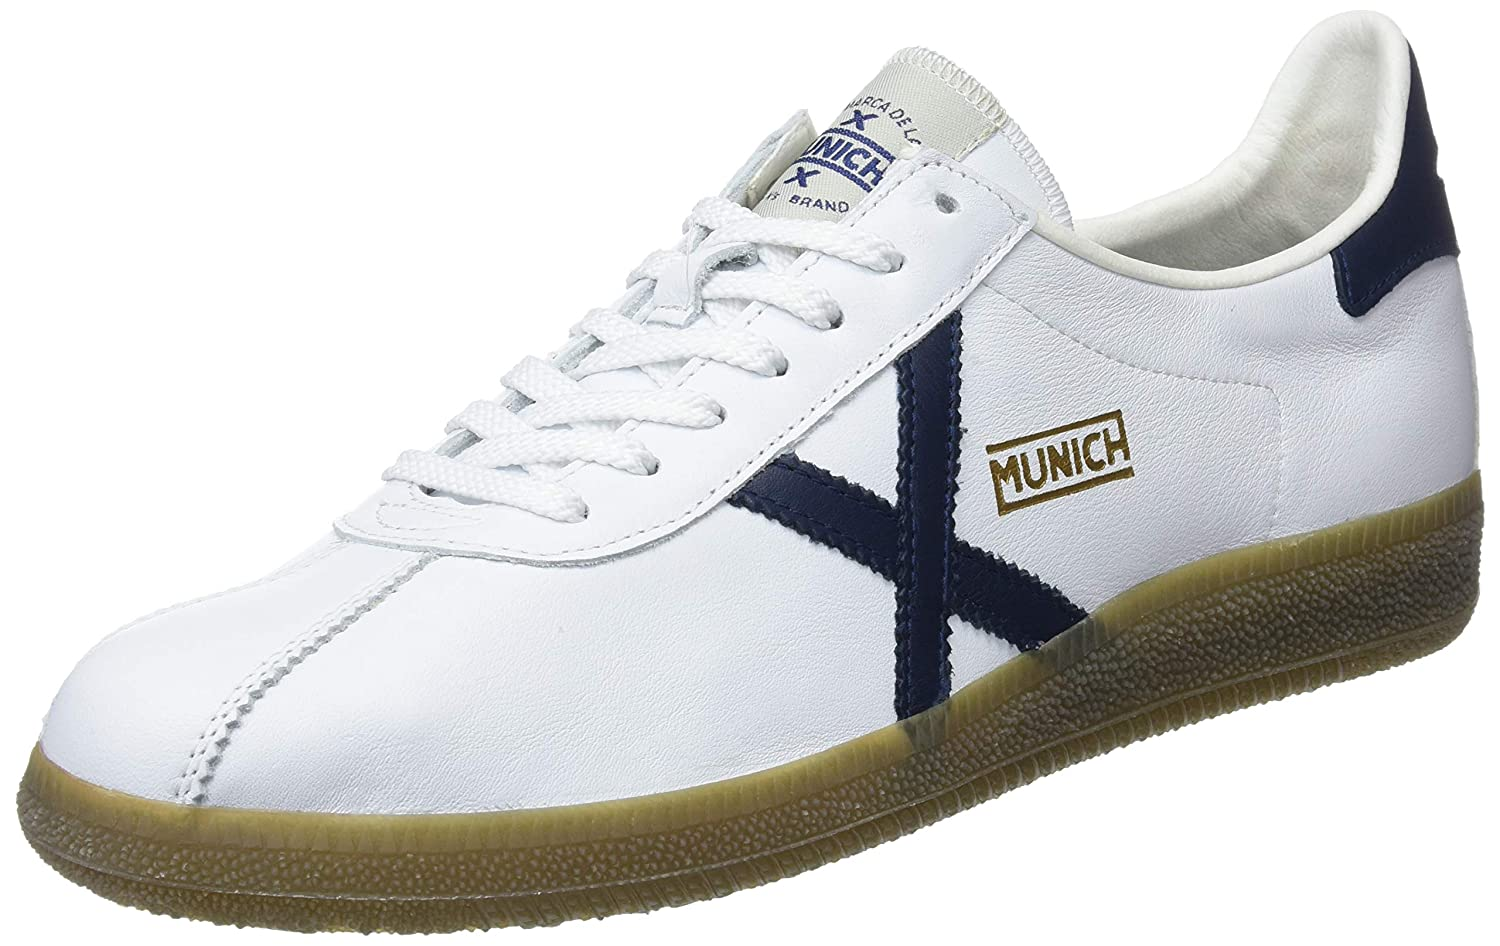 TALLA 44 EU. Munich Barru, Zapatillas Unisex Adulto